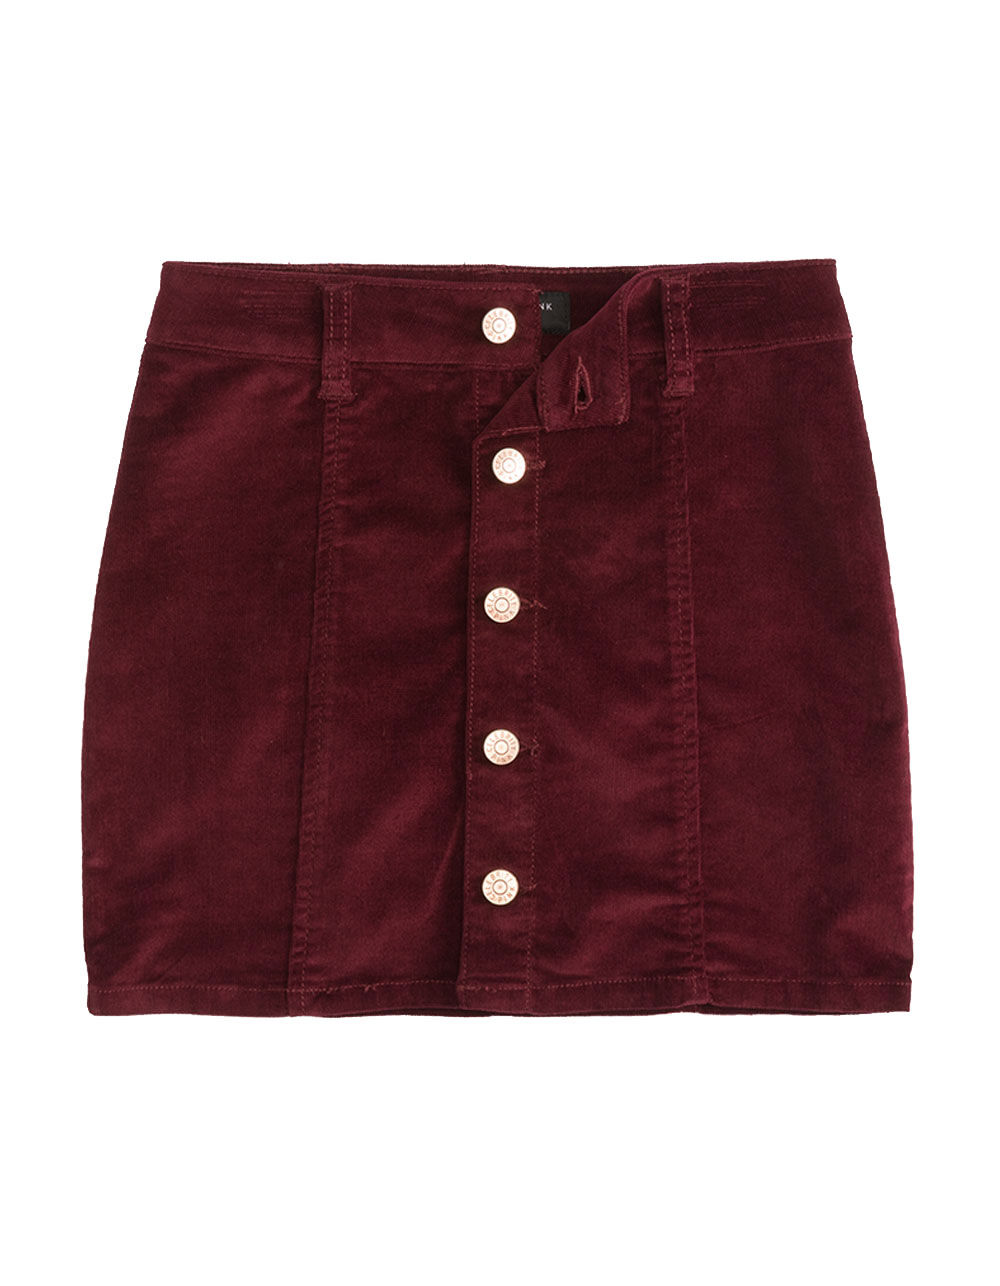 Image of CELEBRITY PINK BUTTON FRONT CORDUROY GIRLS SKIRT